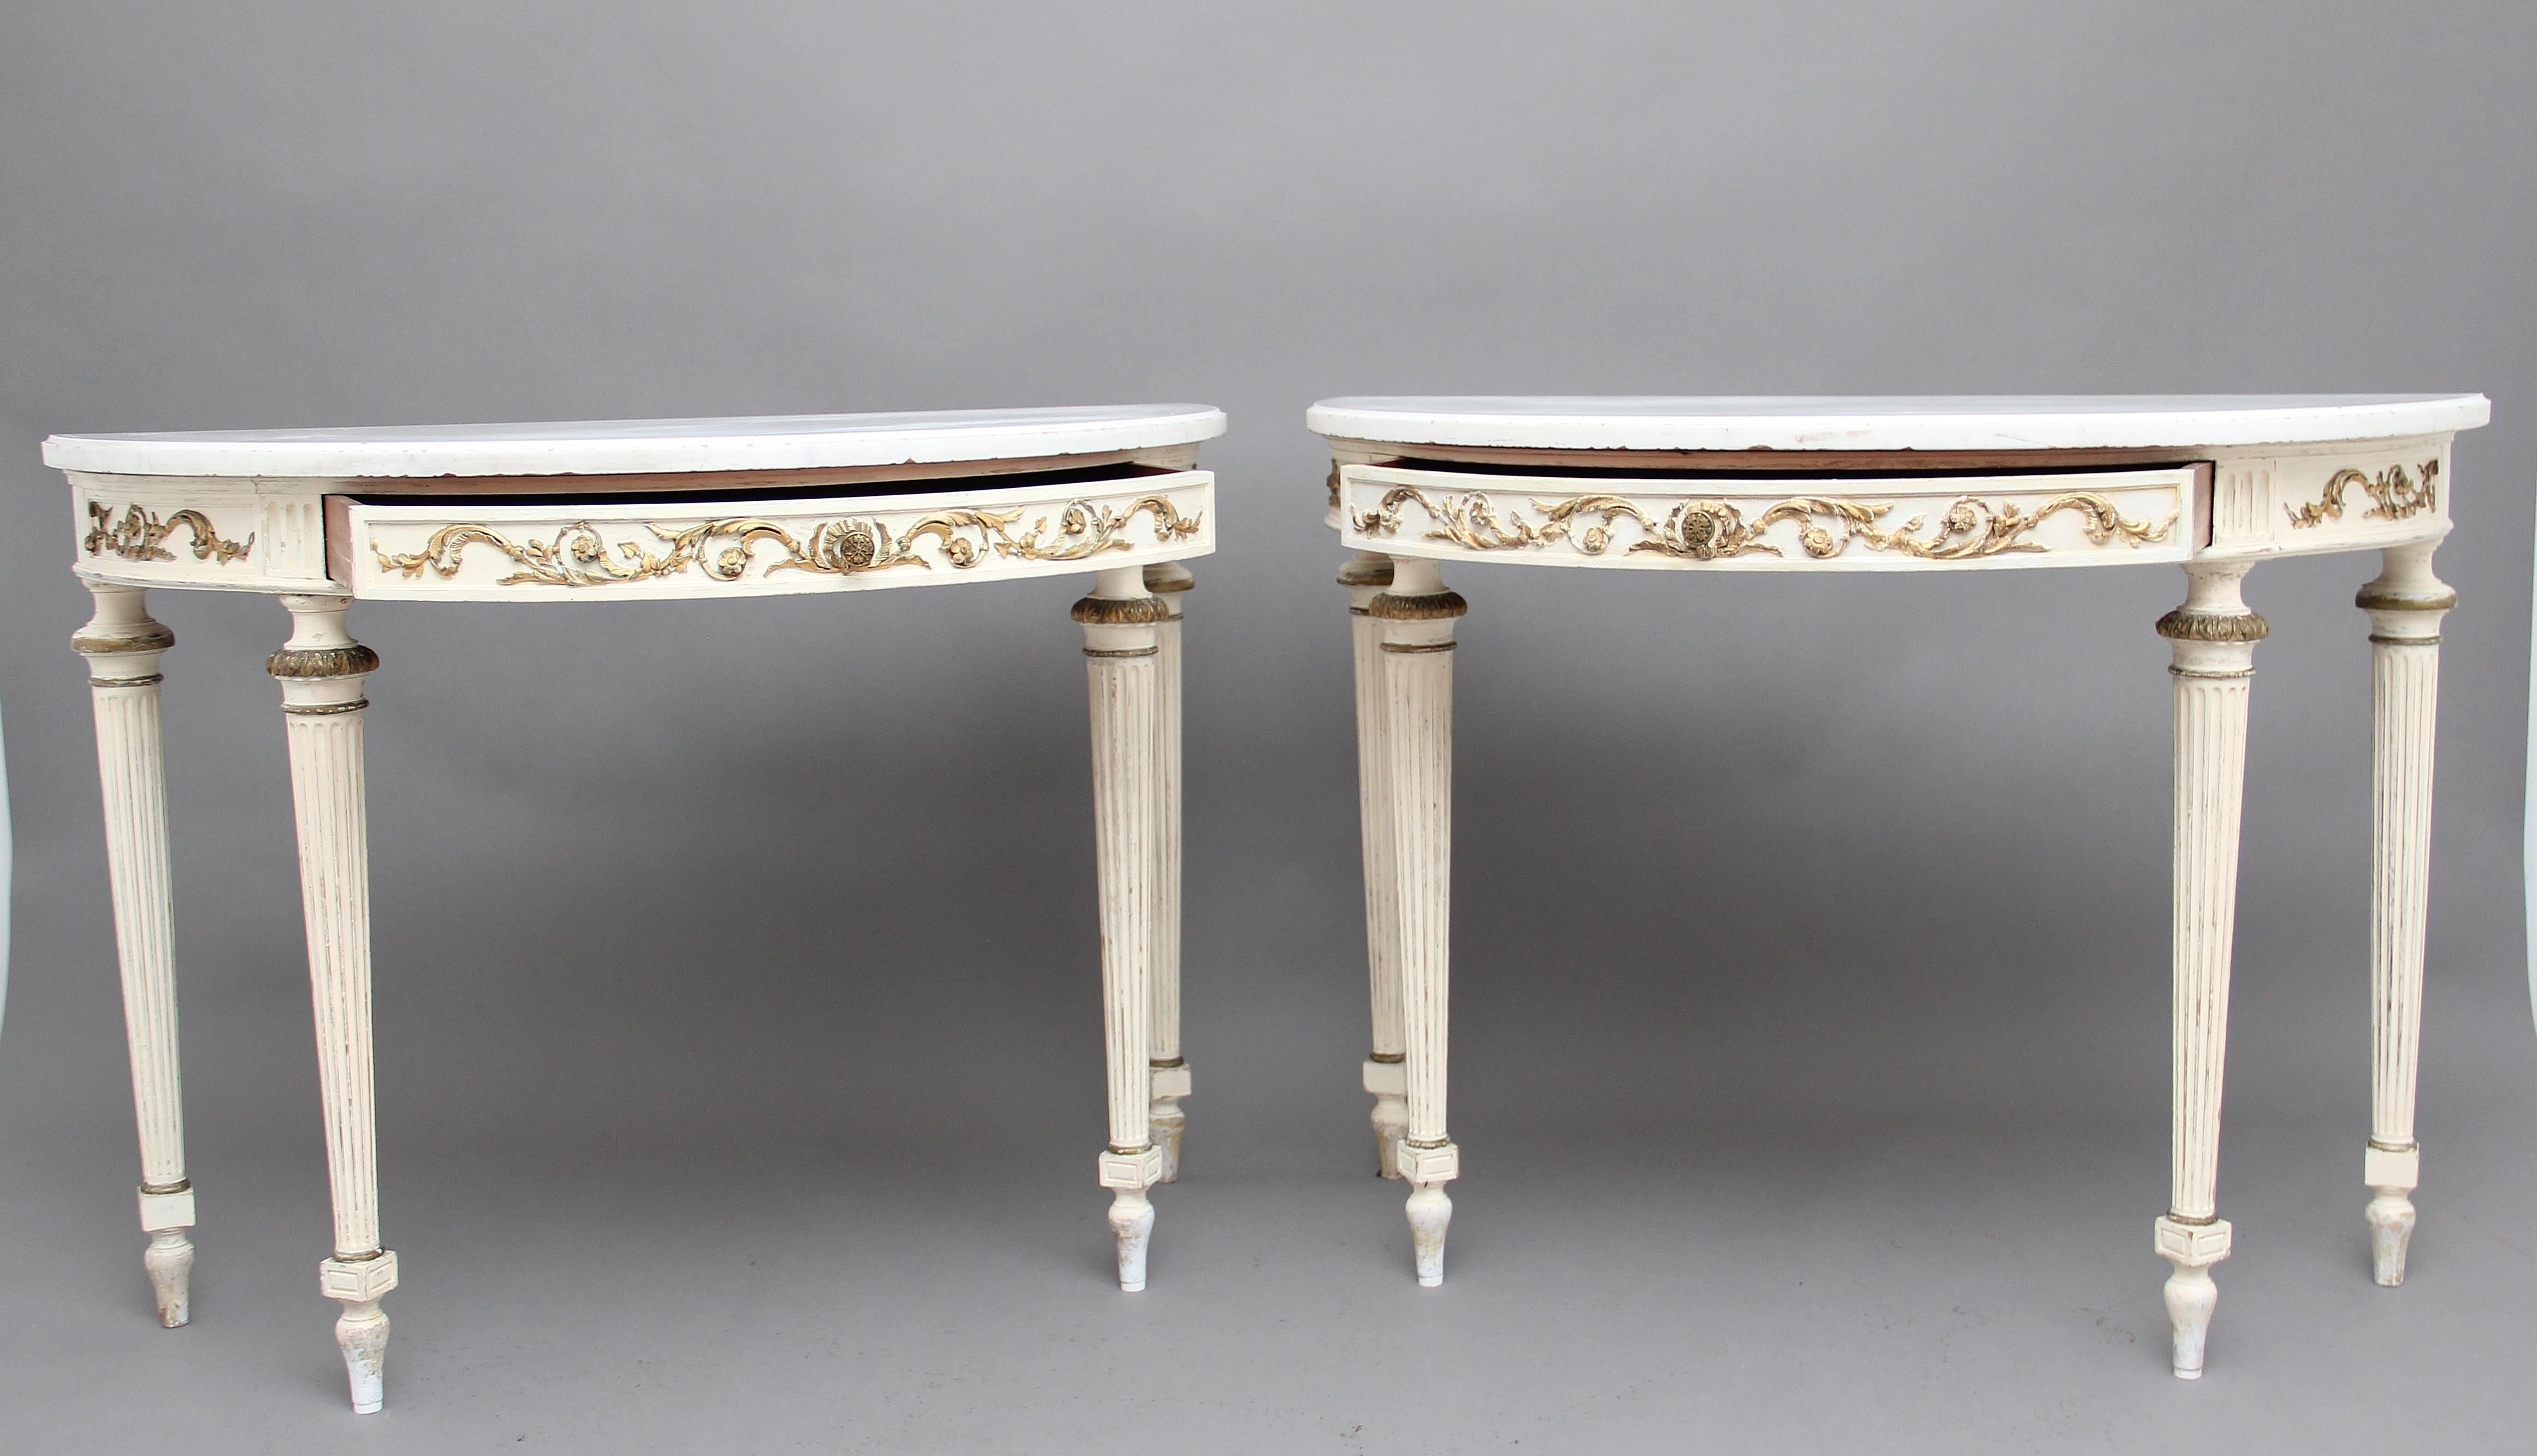 Pair Of 19th Century French Painted Console Tables With Original Marble Tops